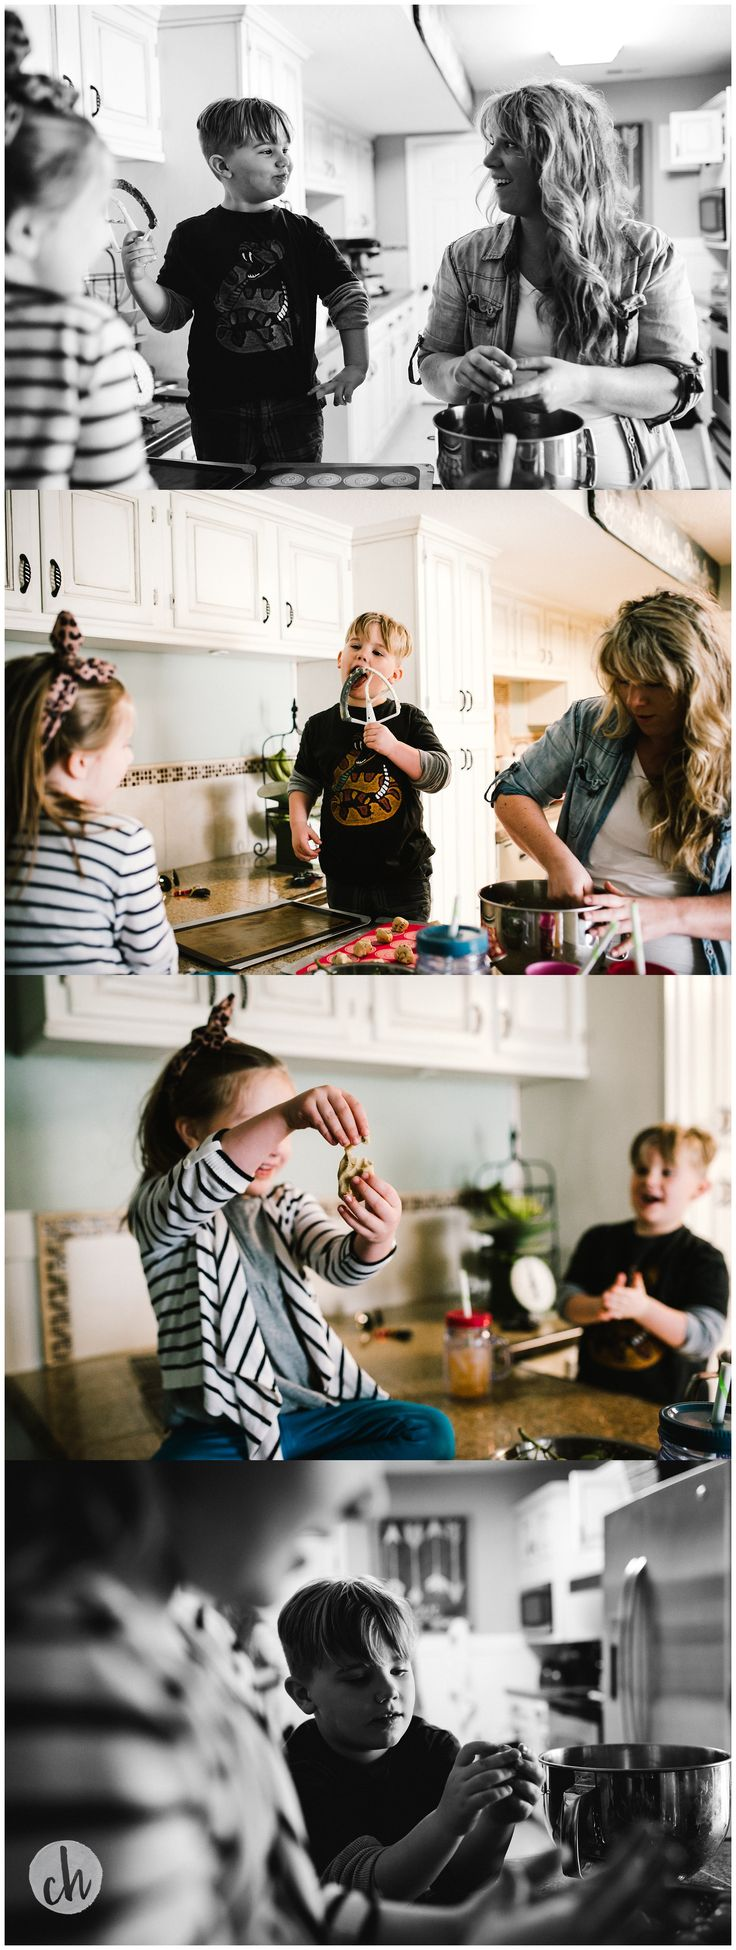 Baking cookies with mom. Family documentary photo session in kansas city. www.christinehurlaphotography.com